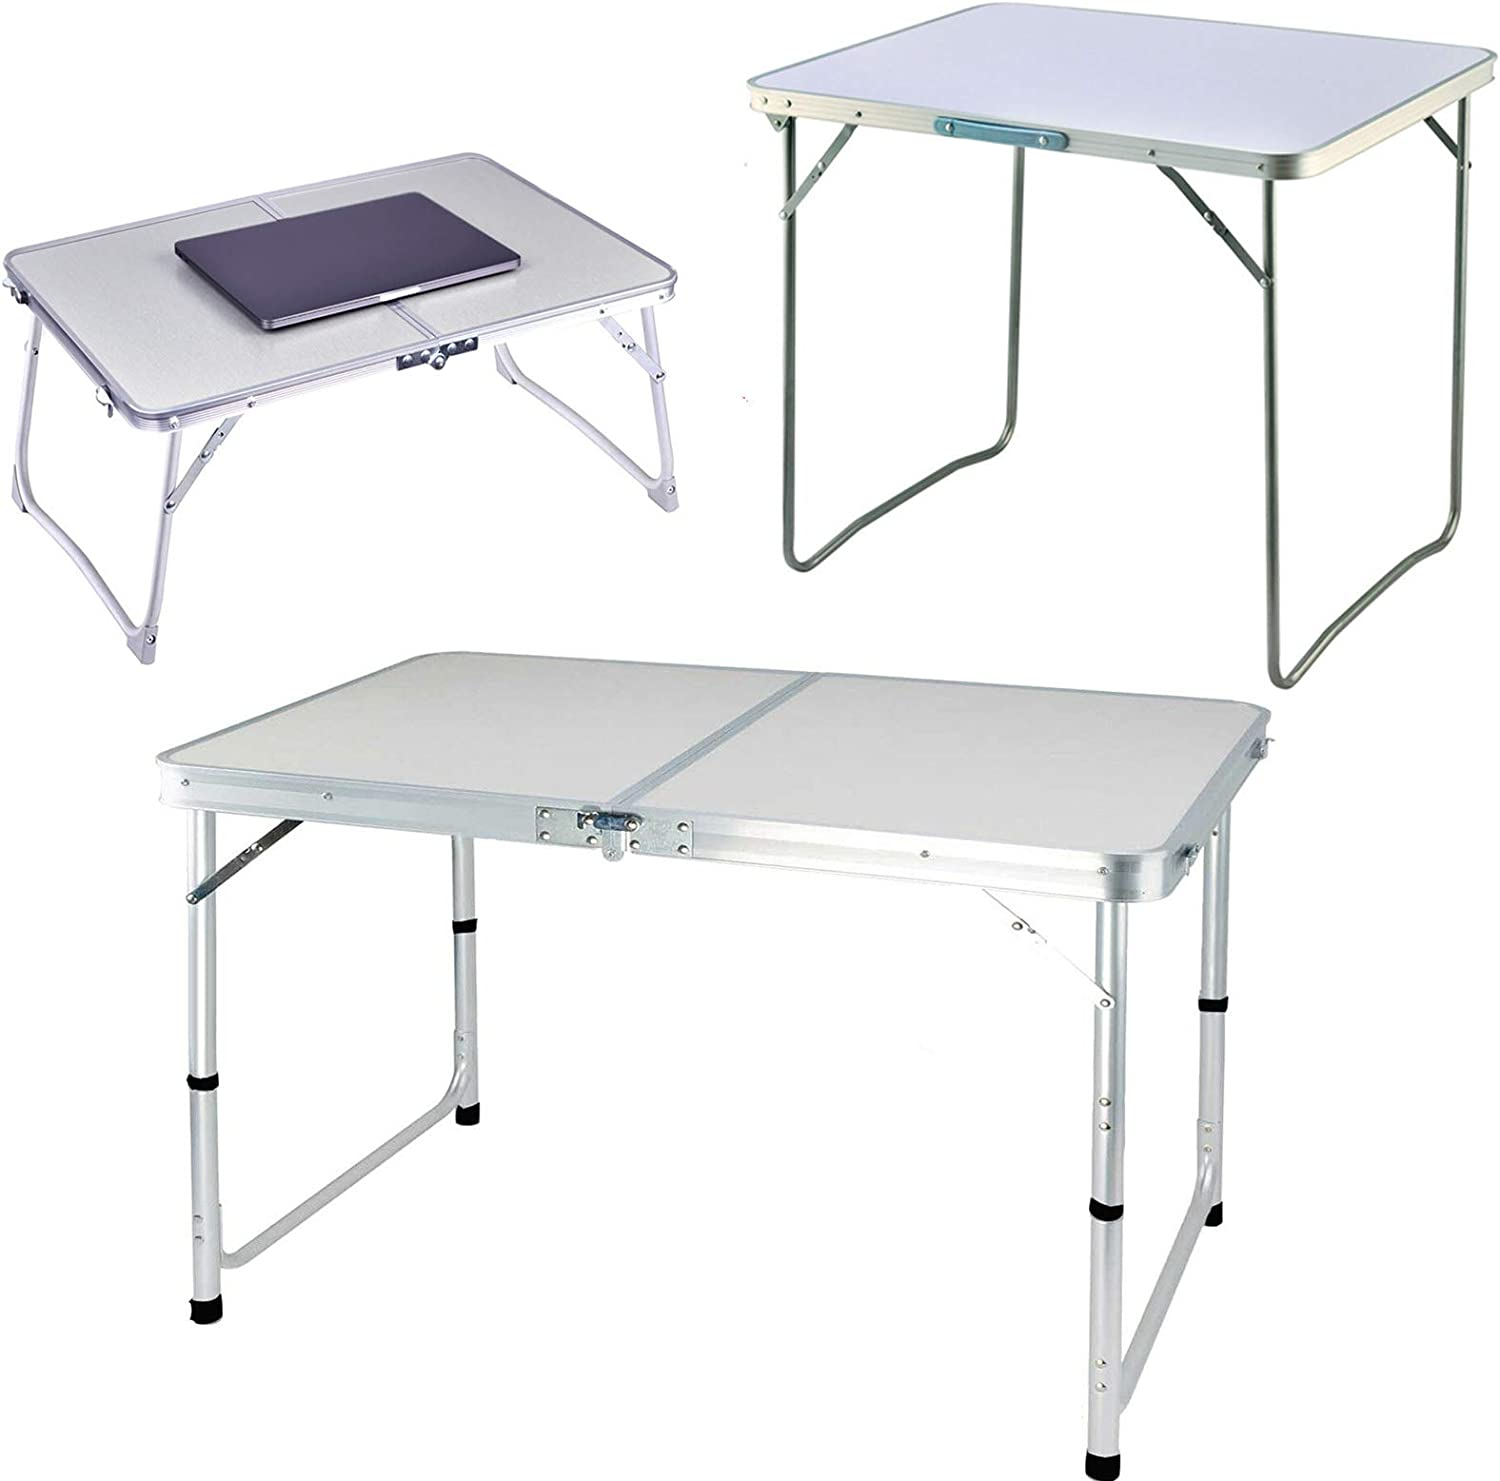 A surprise price is In a popularity realized Portable Fold-in-Half Aluminum Picnic Camping Table Party Dining